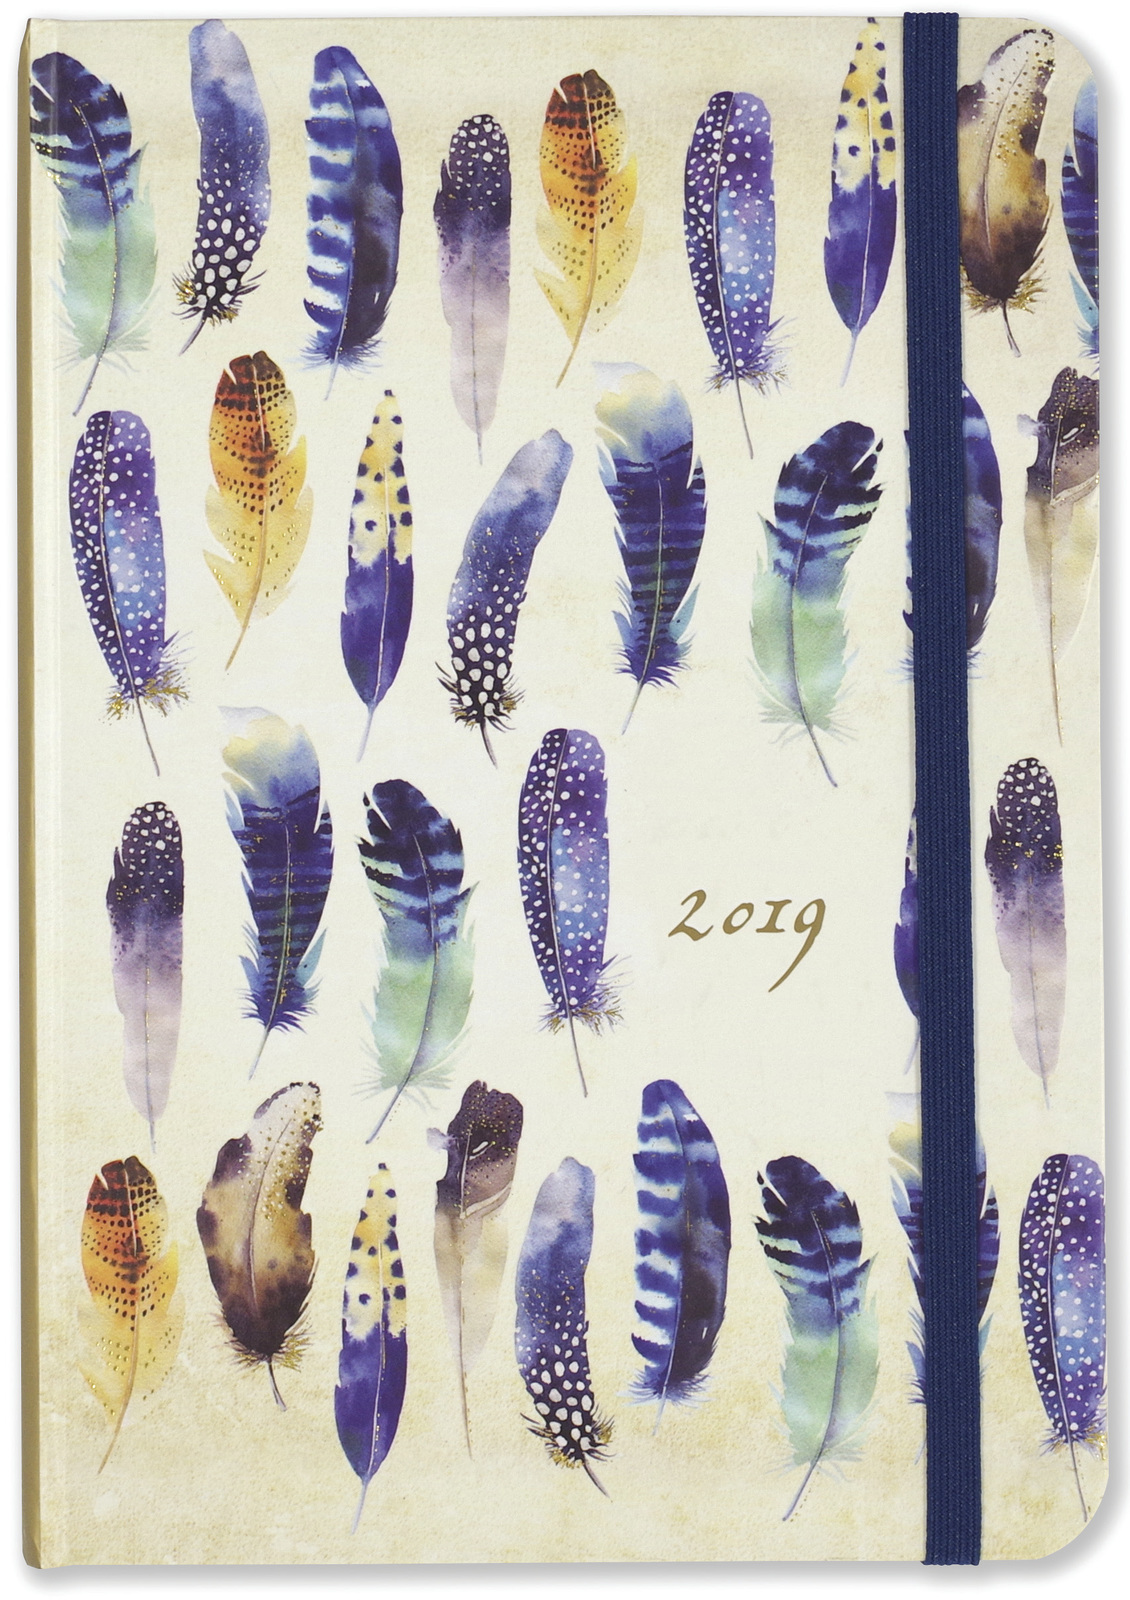 Peter Pauper: Feathers 16 Month 2019 Compact Diary image